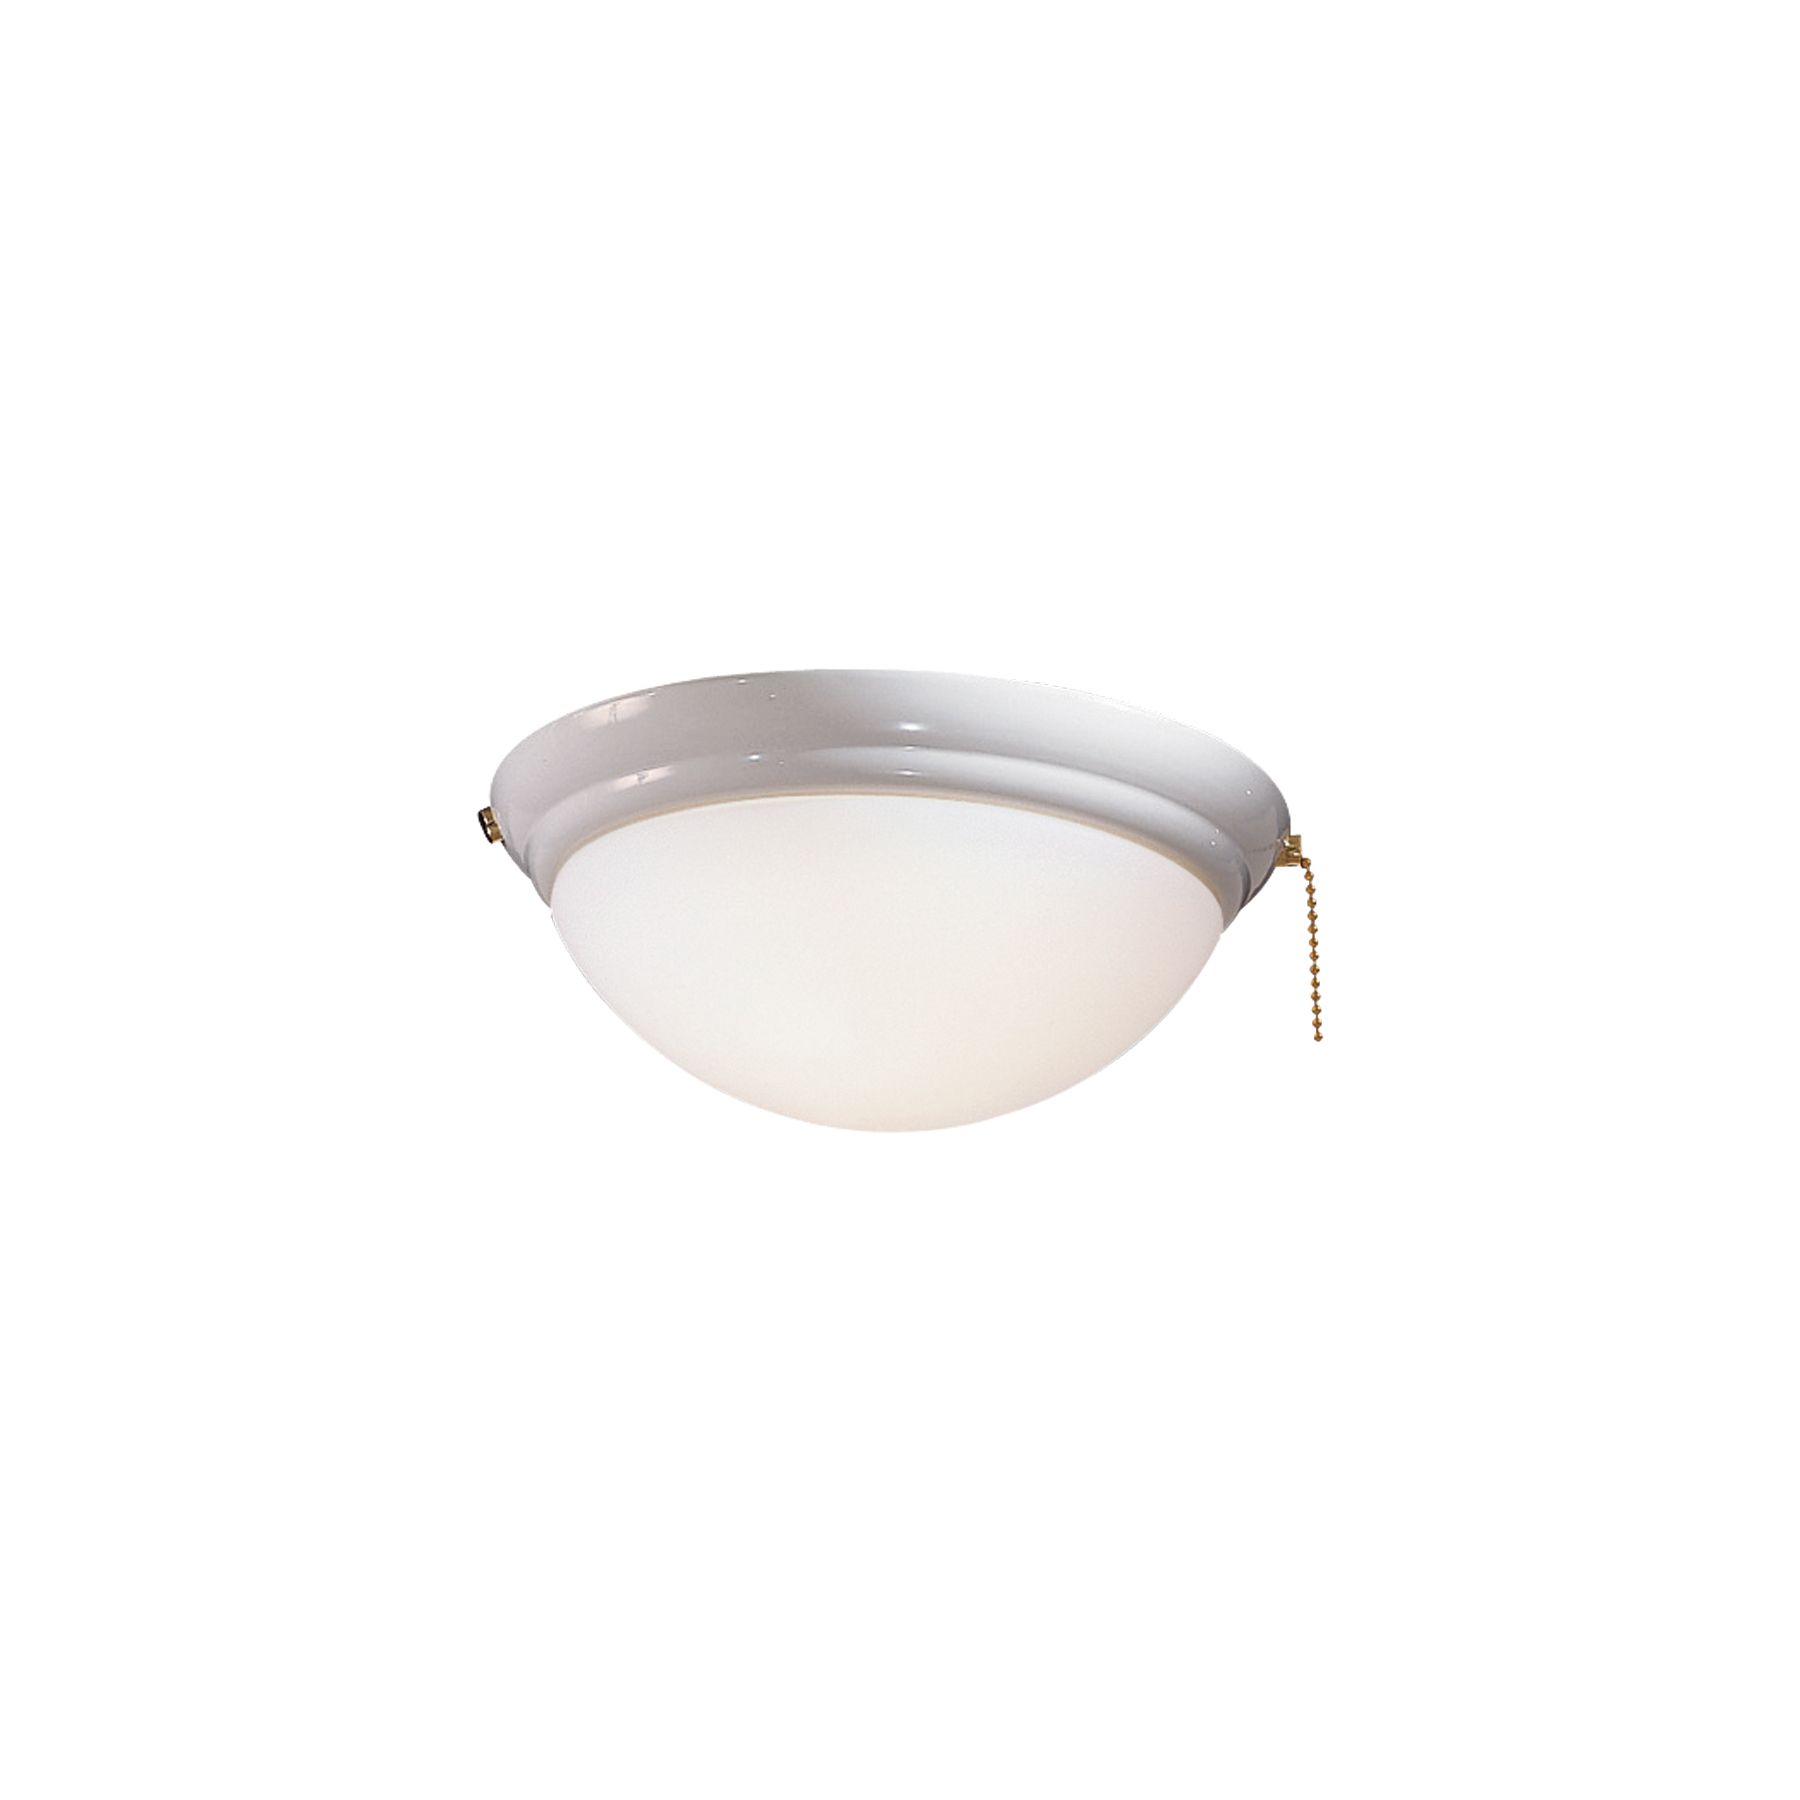 10.25 One Light Bowl Kit White Finish with Etched Opal Glass Minka Aire K9374-L-WH Accessory